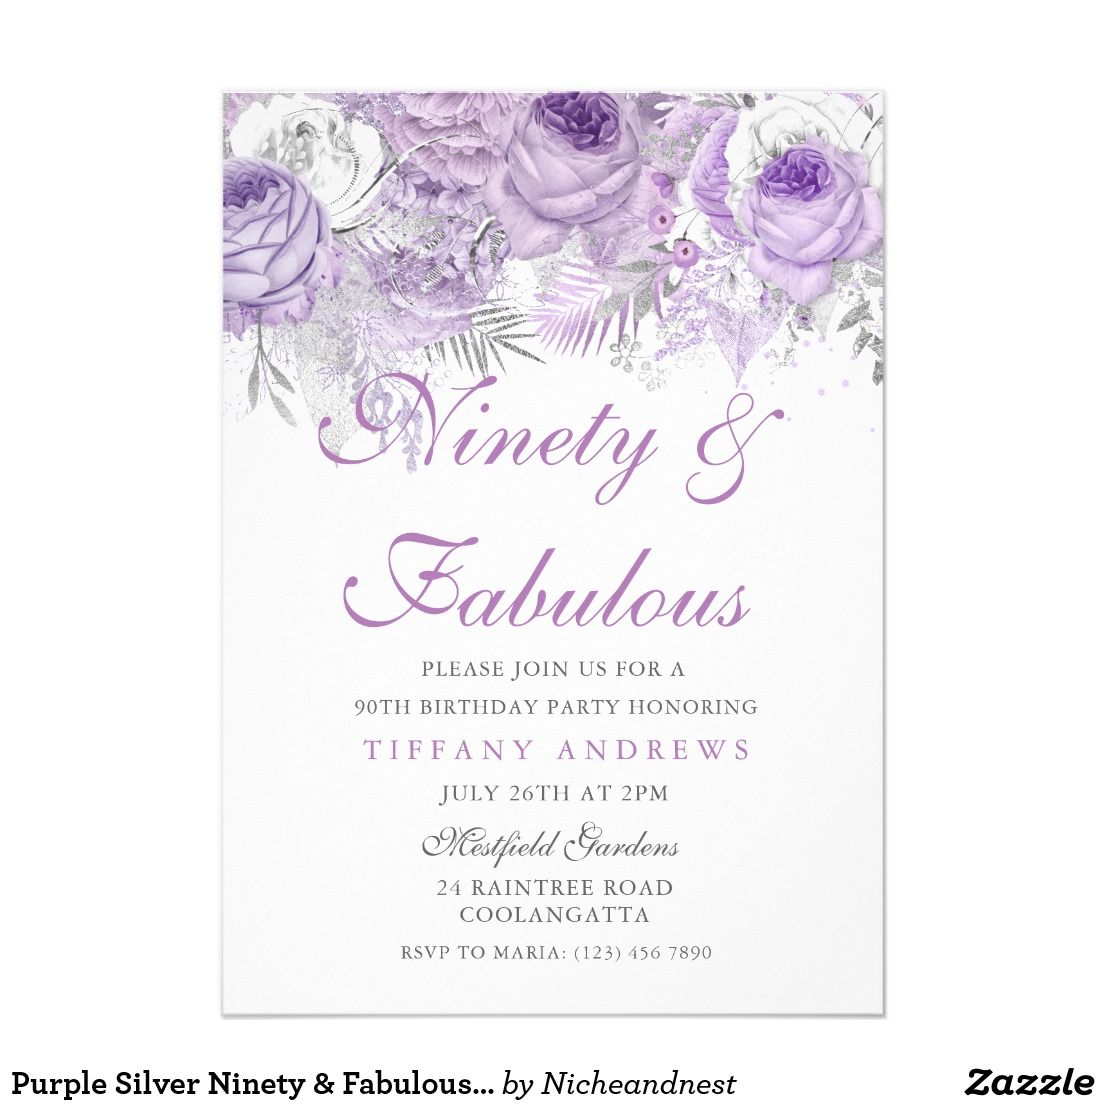 Purple Silver Ninety Fabulous 90th Birthday Card Invitation See Matching Collection In Niche And Nest Store